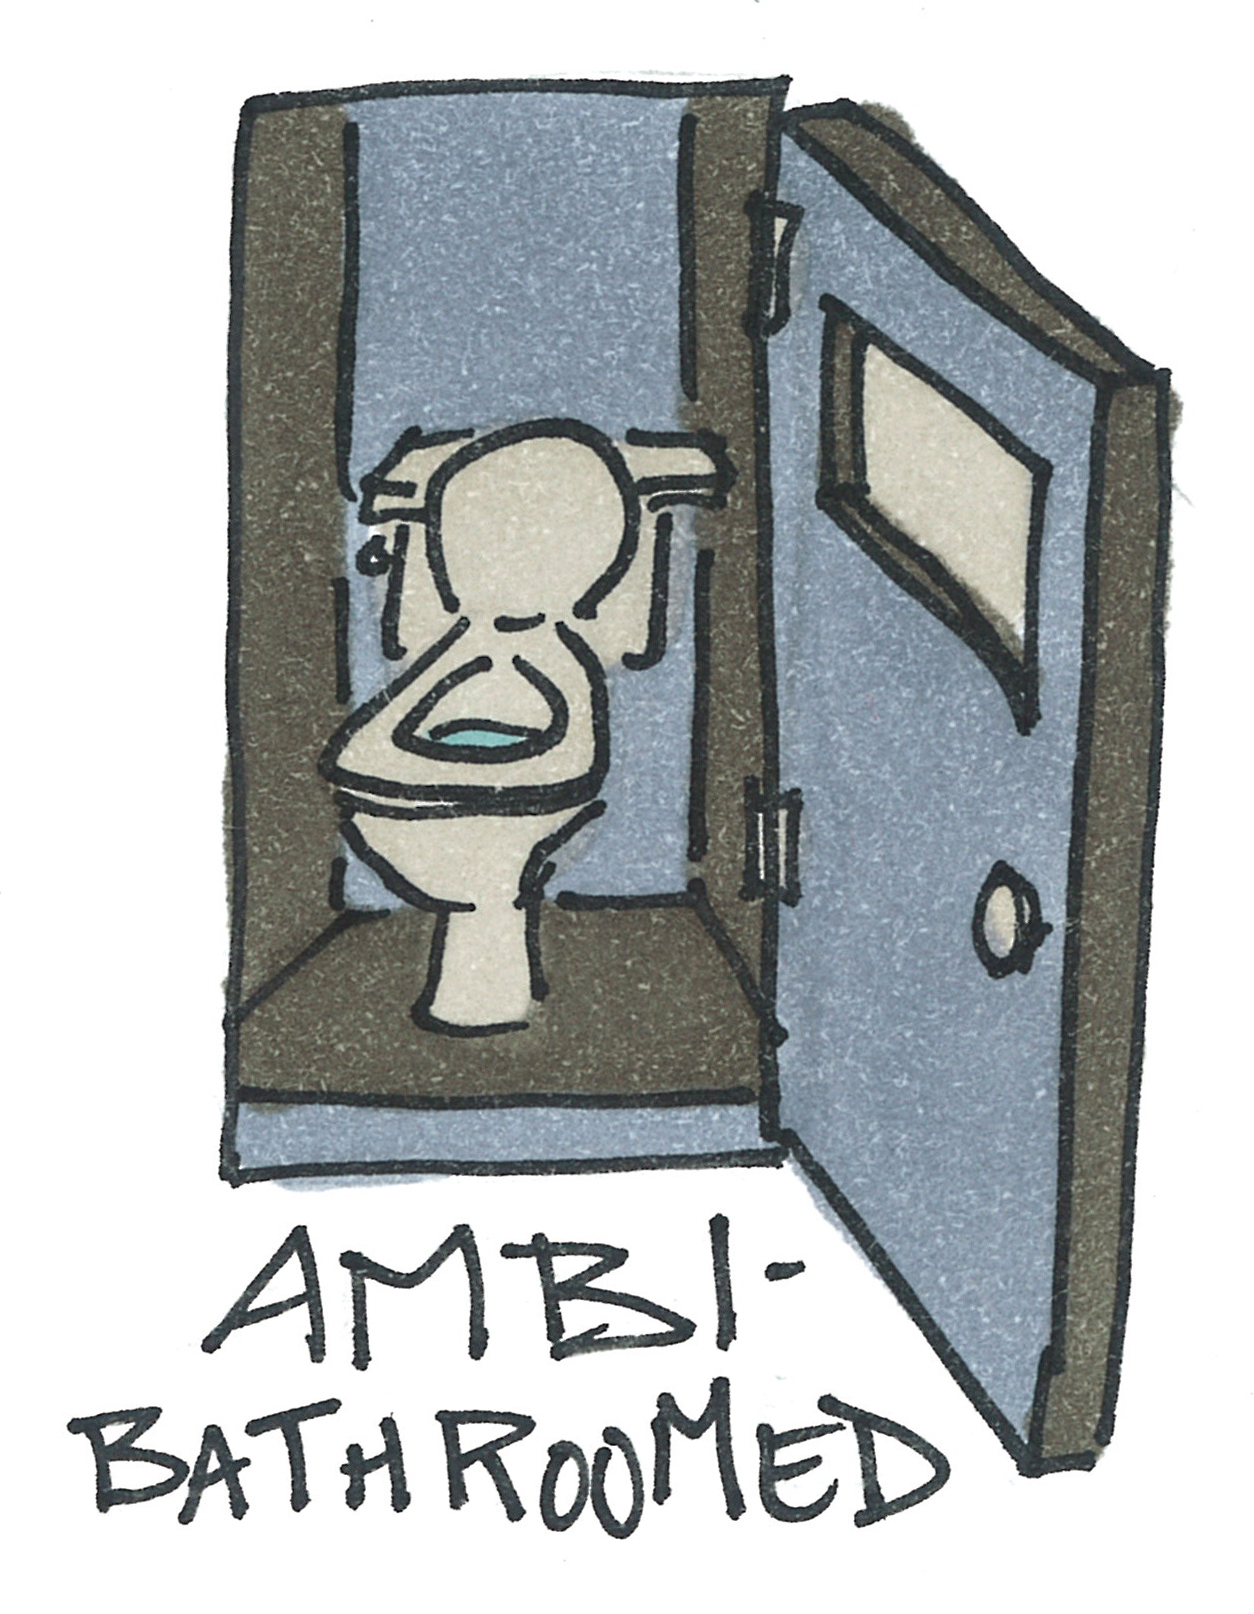 ambi-bathroomed